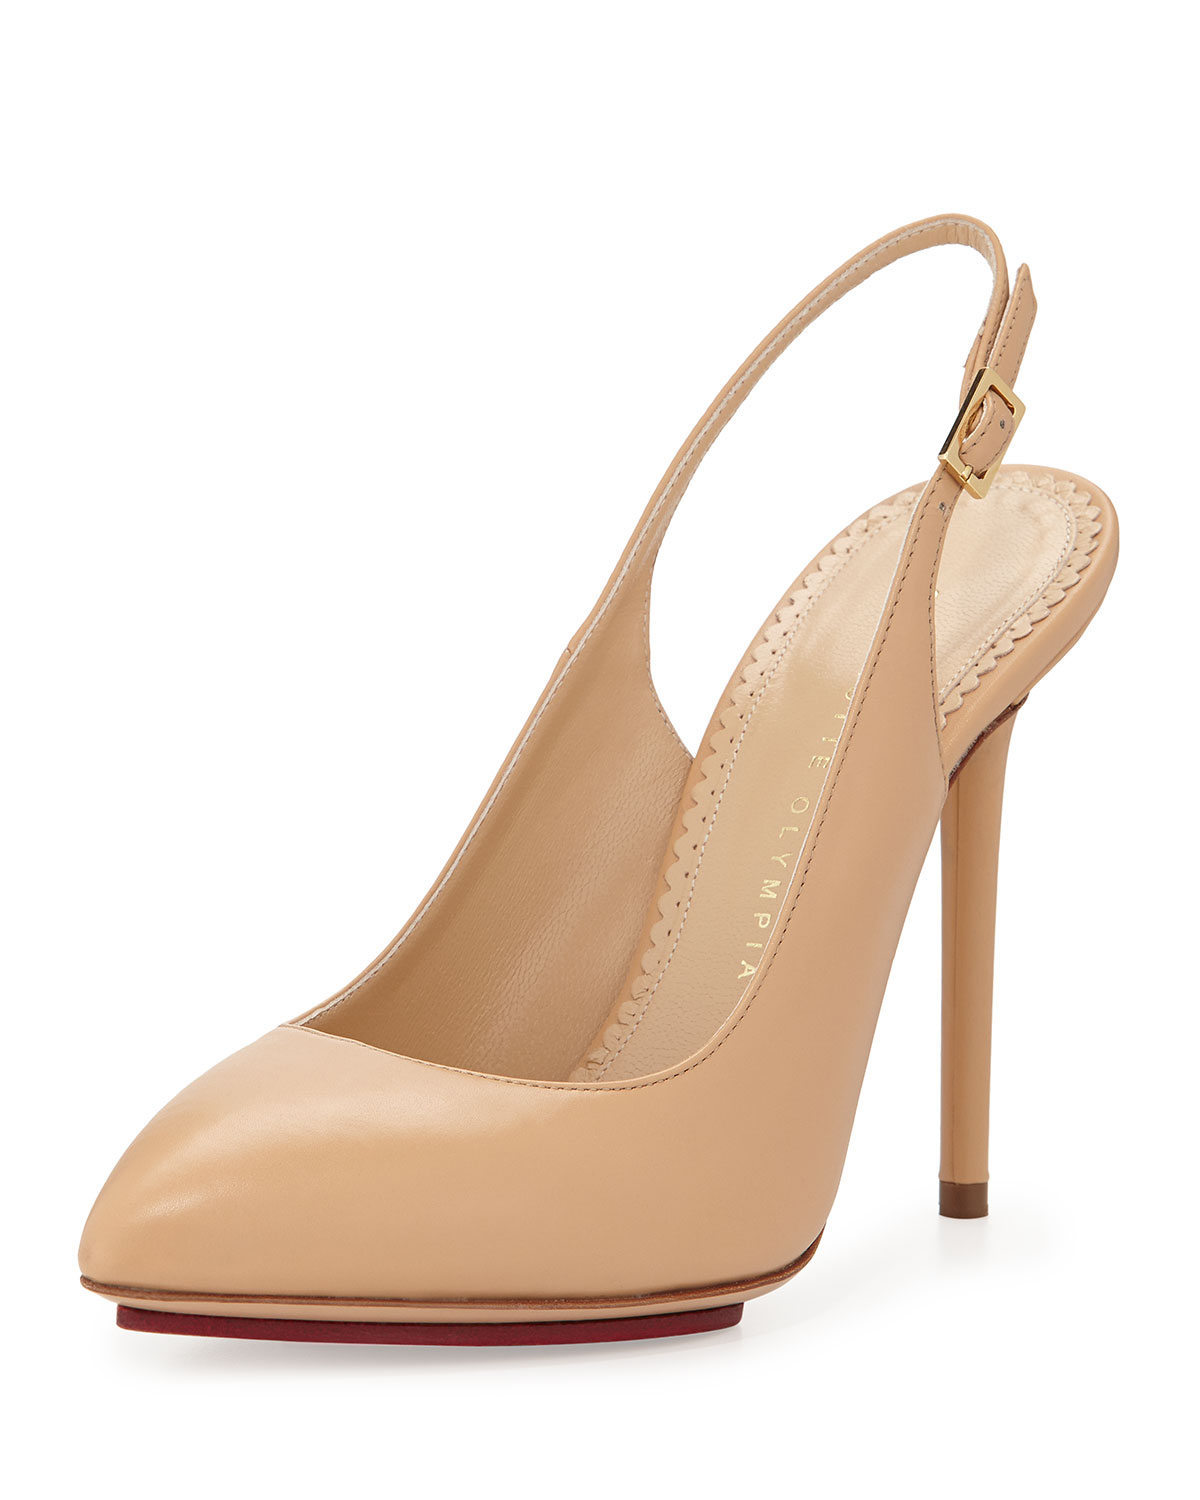 charlotte olympia monroe leather slingback pump in beige nude lyst. Black Bedroom Furniture Sets. Home Design Ideas